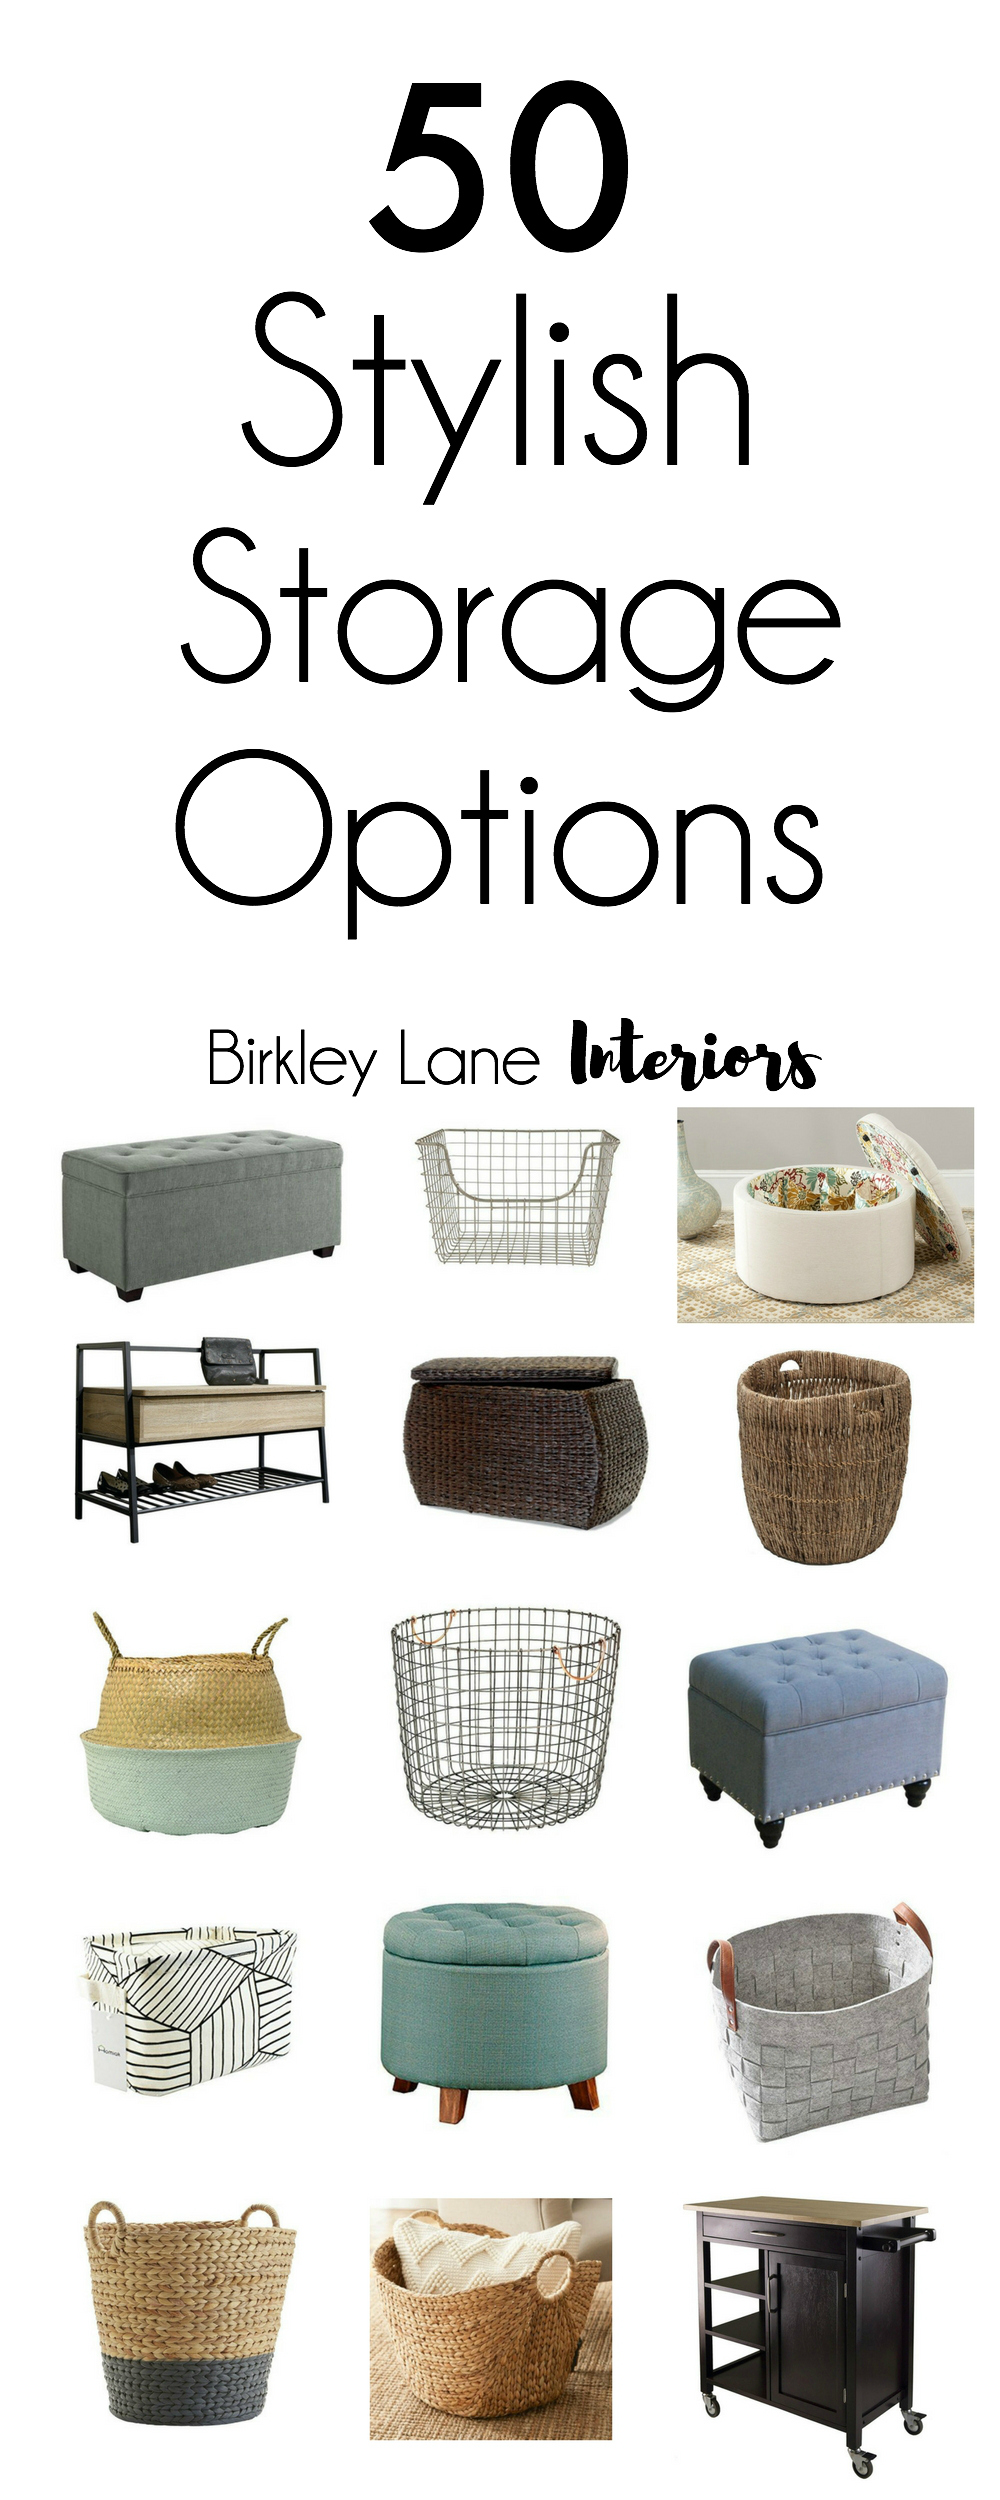 You can be organized and stylish at the same time with these fifty stylish storage options for your home! Click here for ideas for every room in your home! Storage ideas, storage ideas for small spaces, storage ideas for bedrooms, storage bench, storage solutions, stylish storage, organization, organization ideas for the home, organizing ideas, organizing, stylish storage solutions, stylish storage ideas